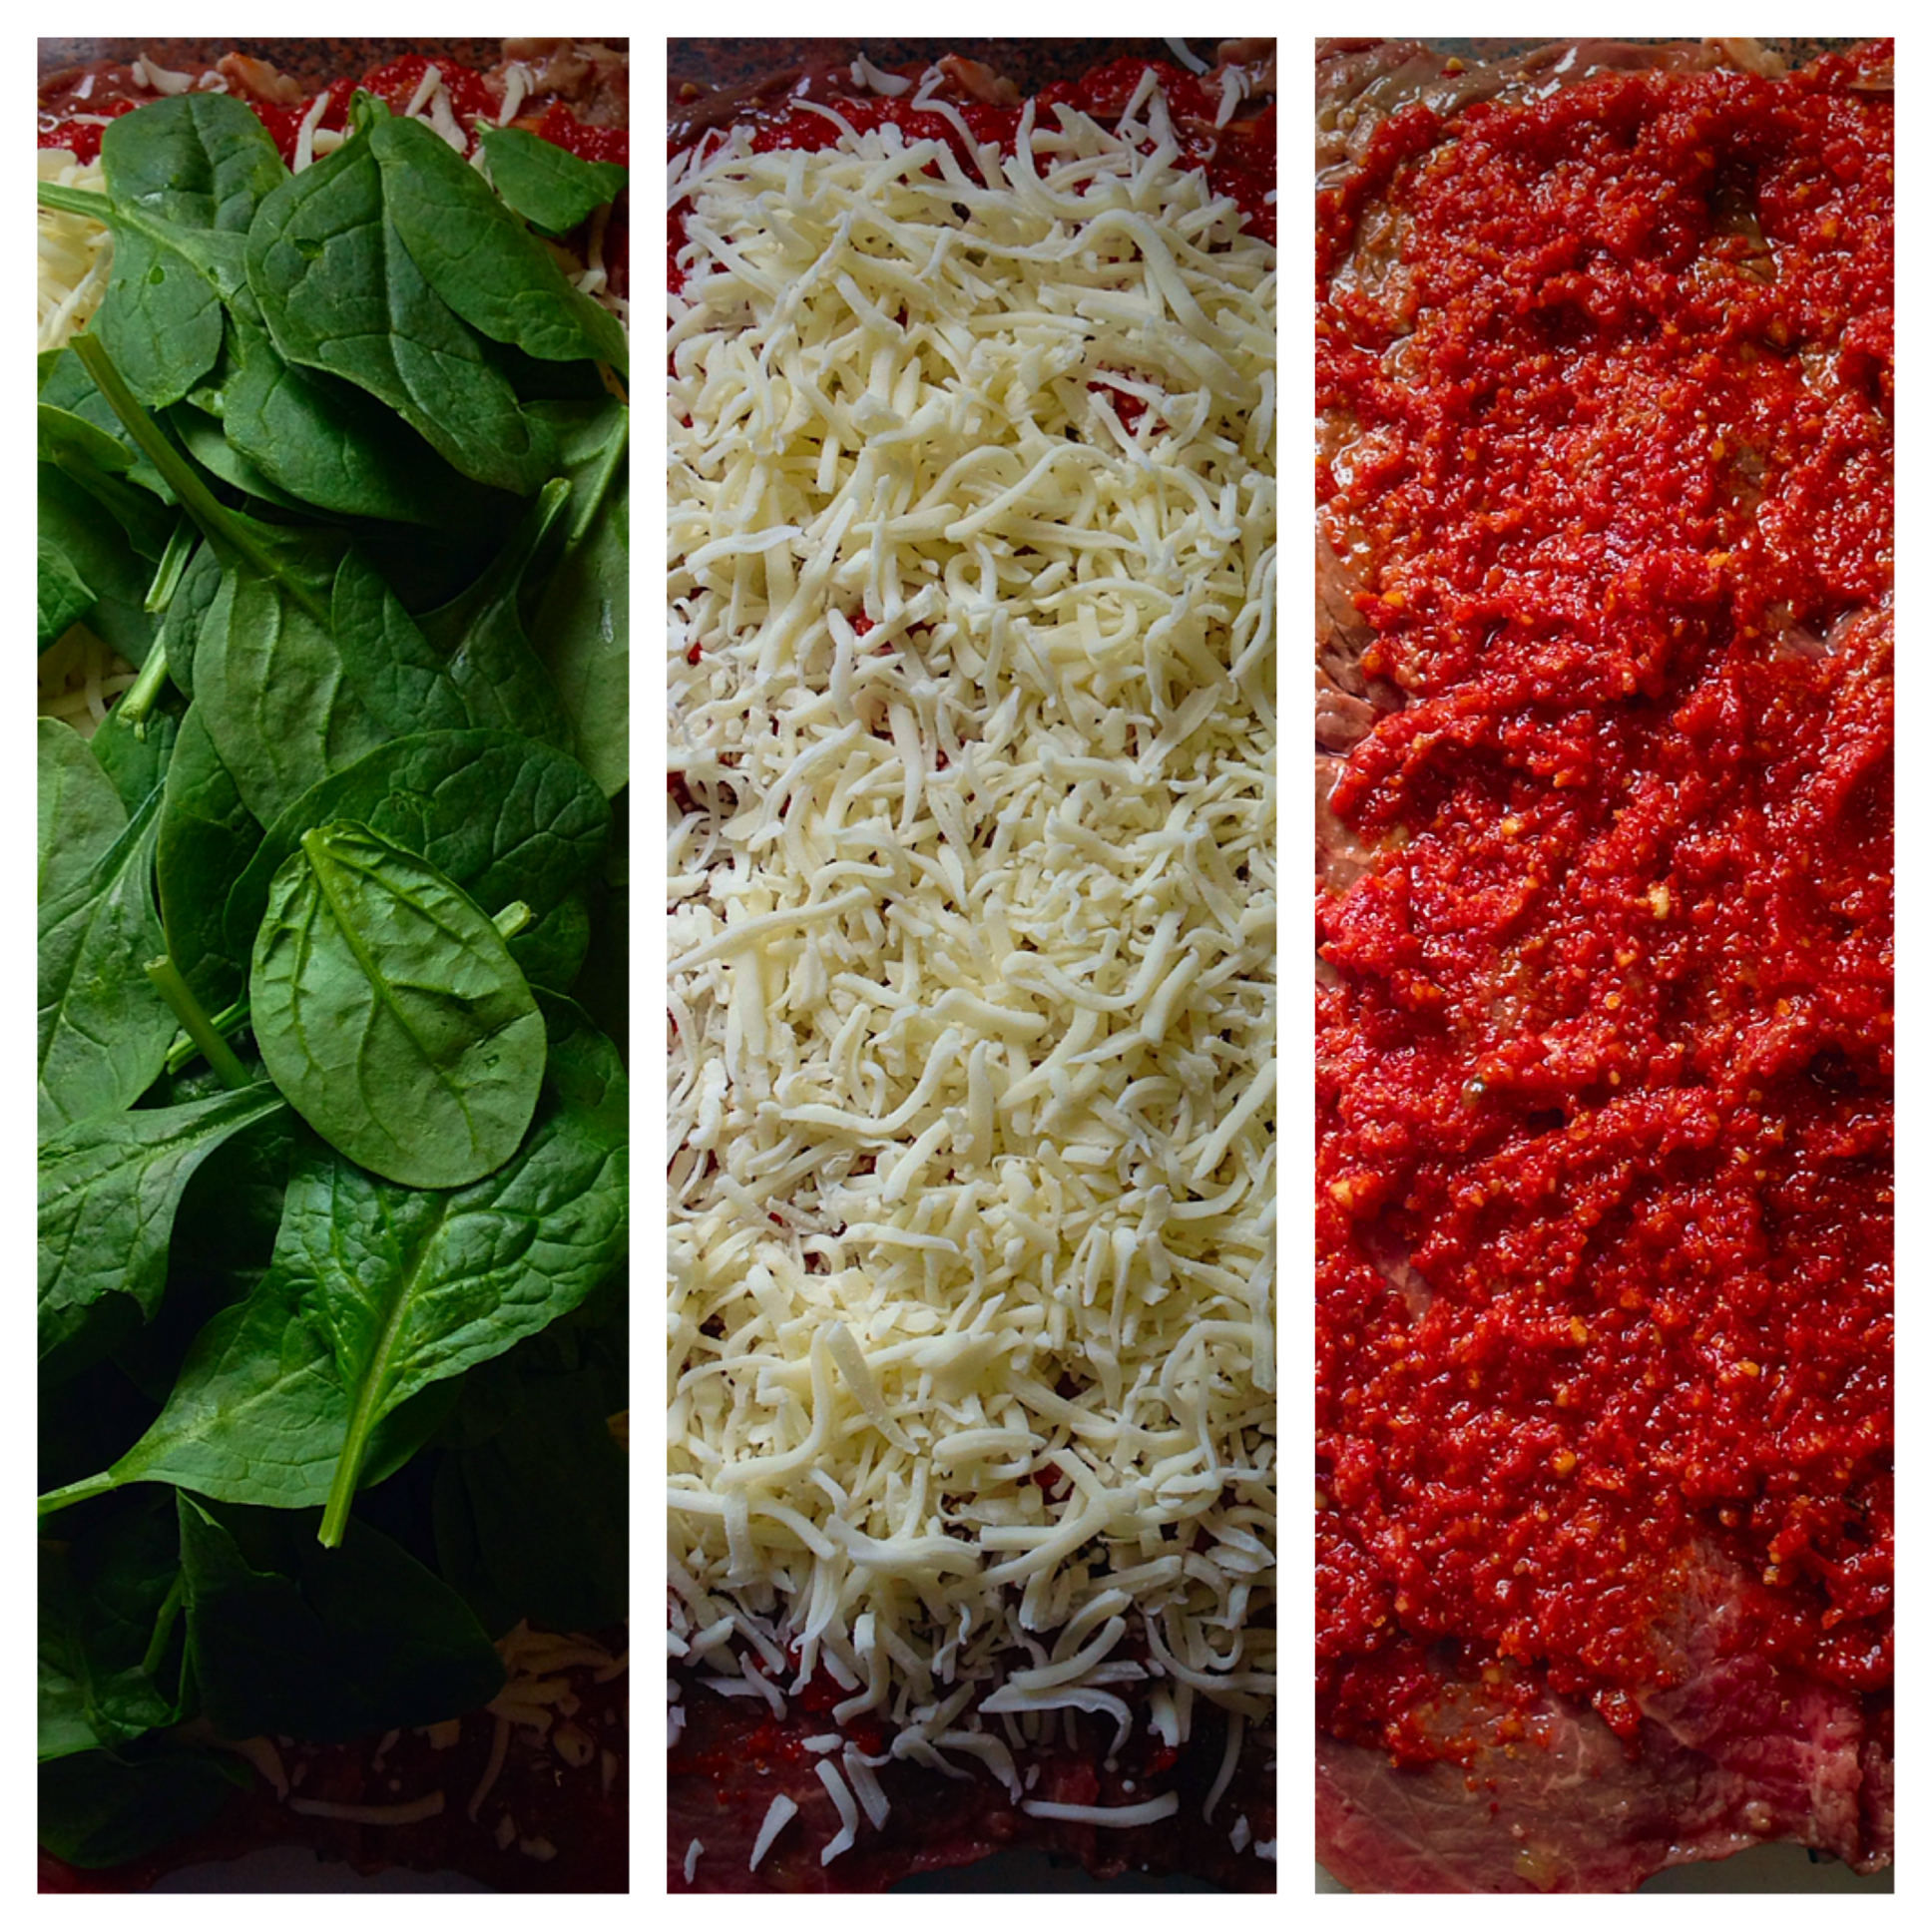 I HAD TO REARRANGE THE PICTURES IN REVERSE TO MIMIC THE ITALIAN FLAG. SO FIRST YOU LAYER ON THE SUN-DRIED TOMATO PESTO, THEN THE MOZZARELLA AND FINALLY THE SPINACH.